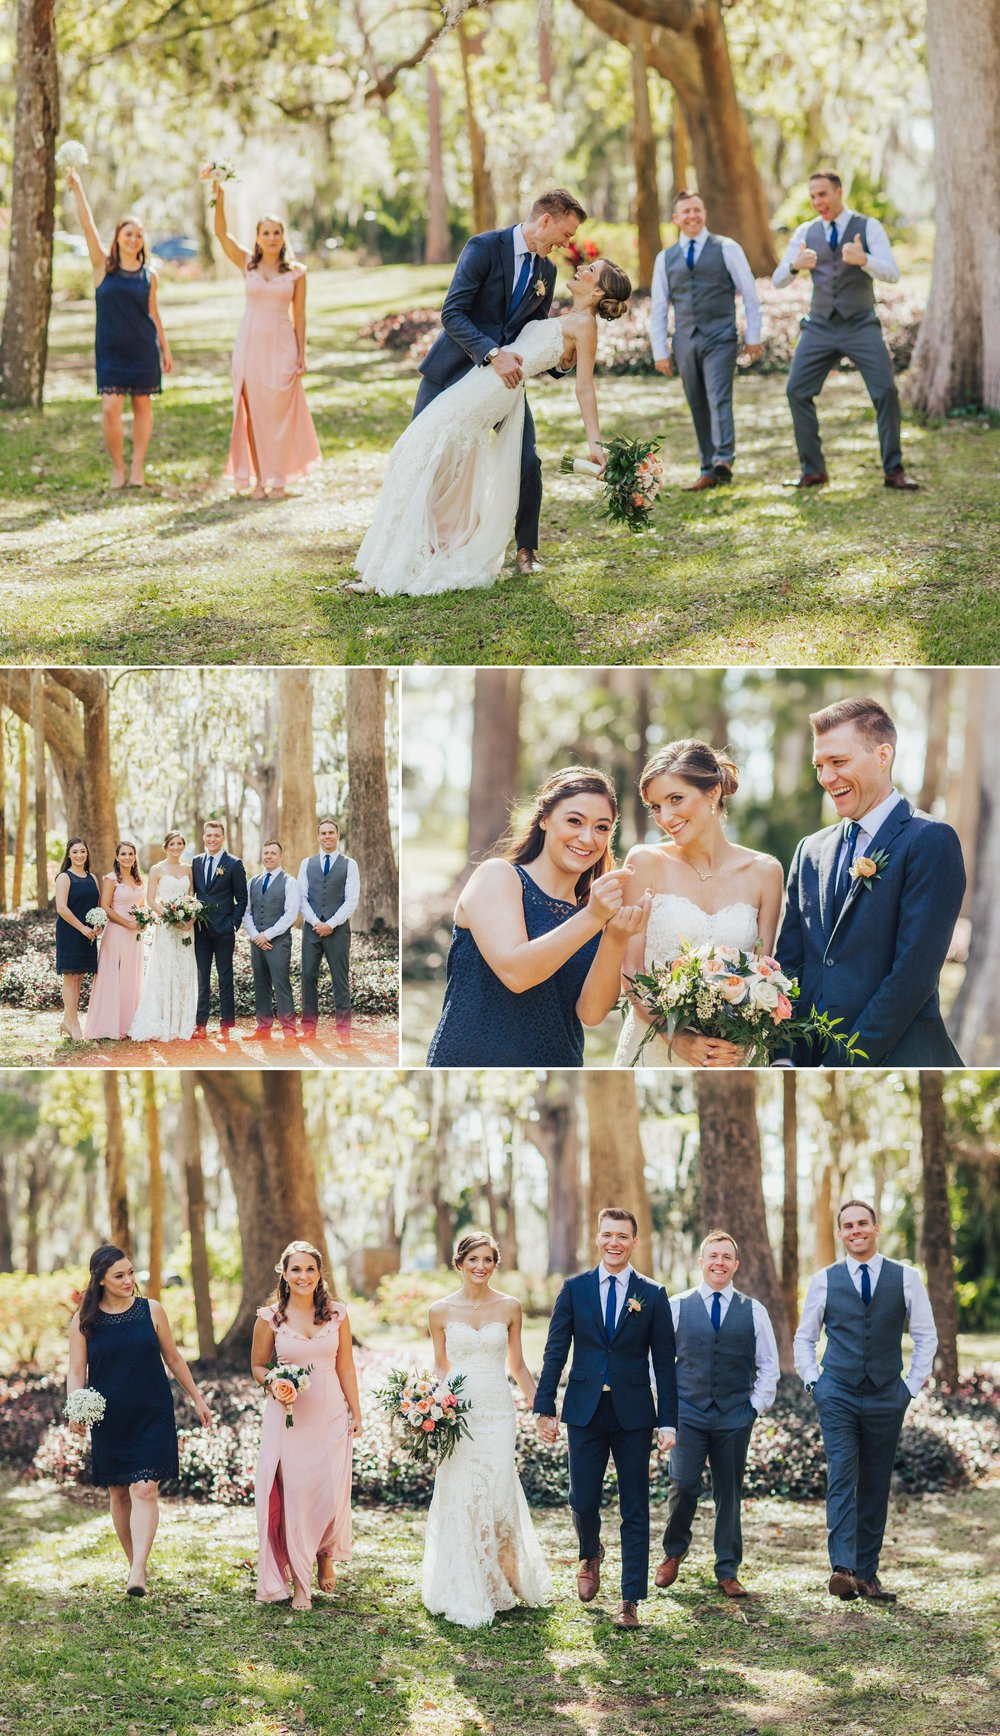 Winter Park farmers market wedding- bohemian chic floral wedding photography by Shaina DeCiryan10.jpg